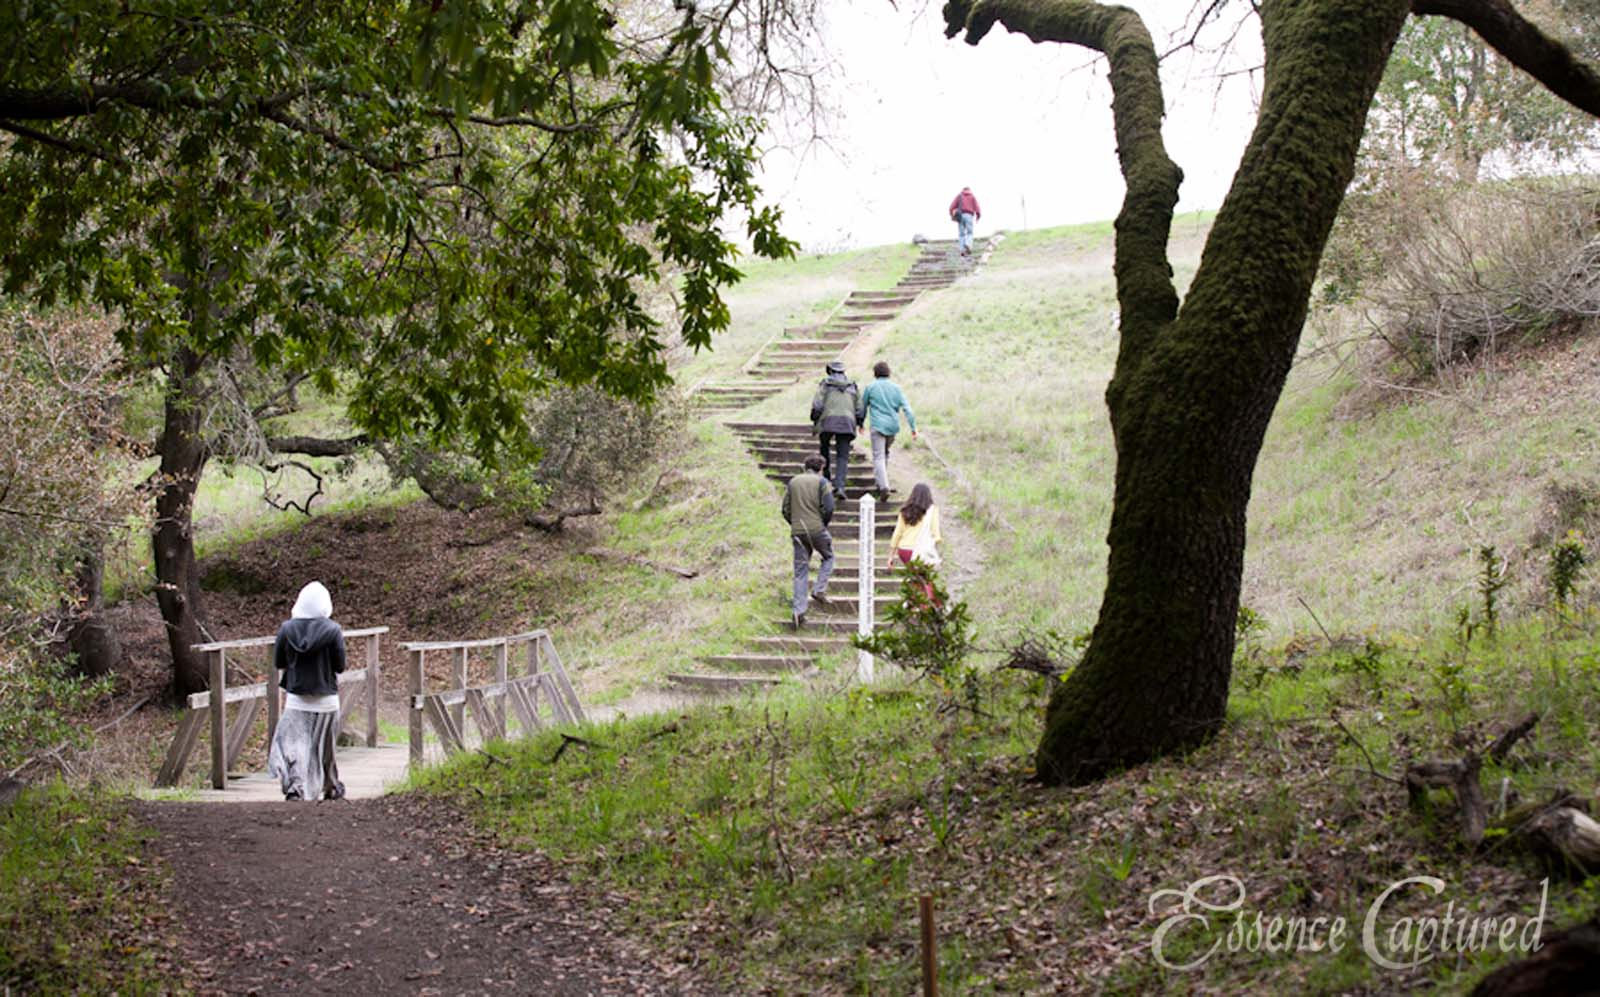 Earthrise retreat attendees walk on path through oak forest